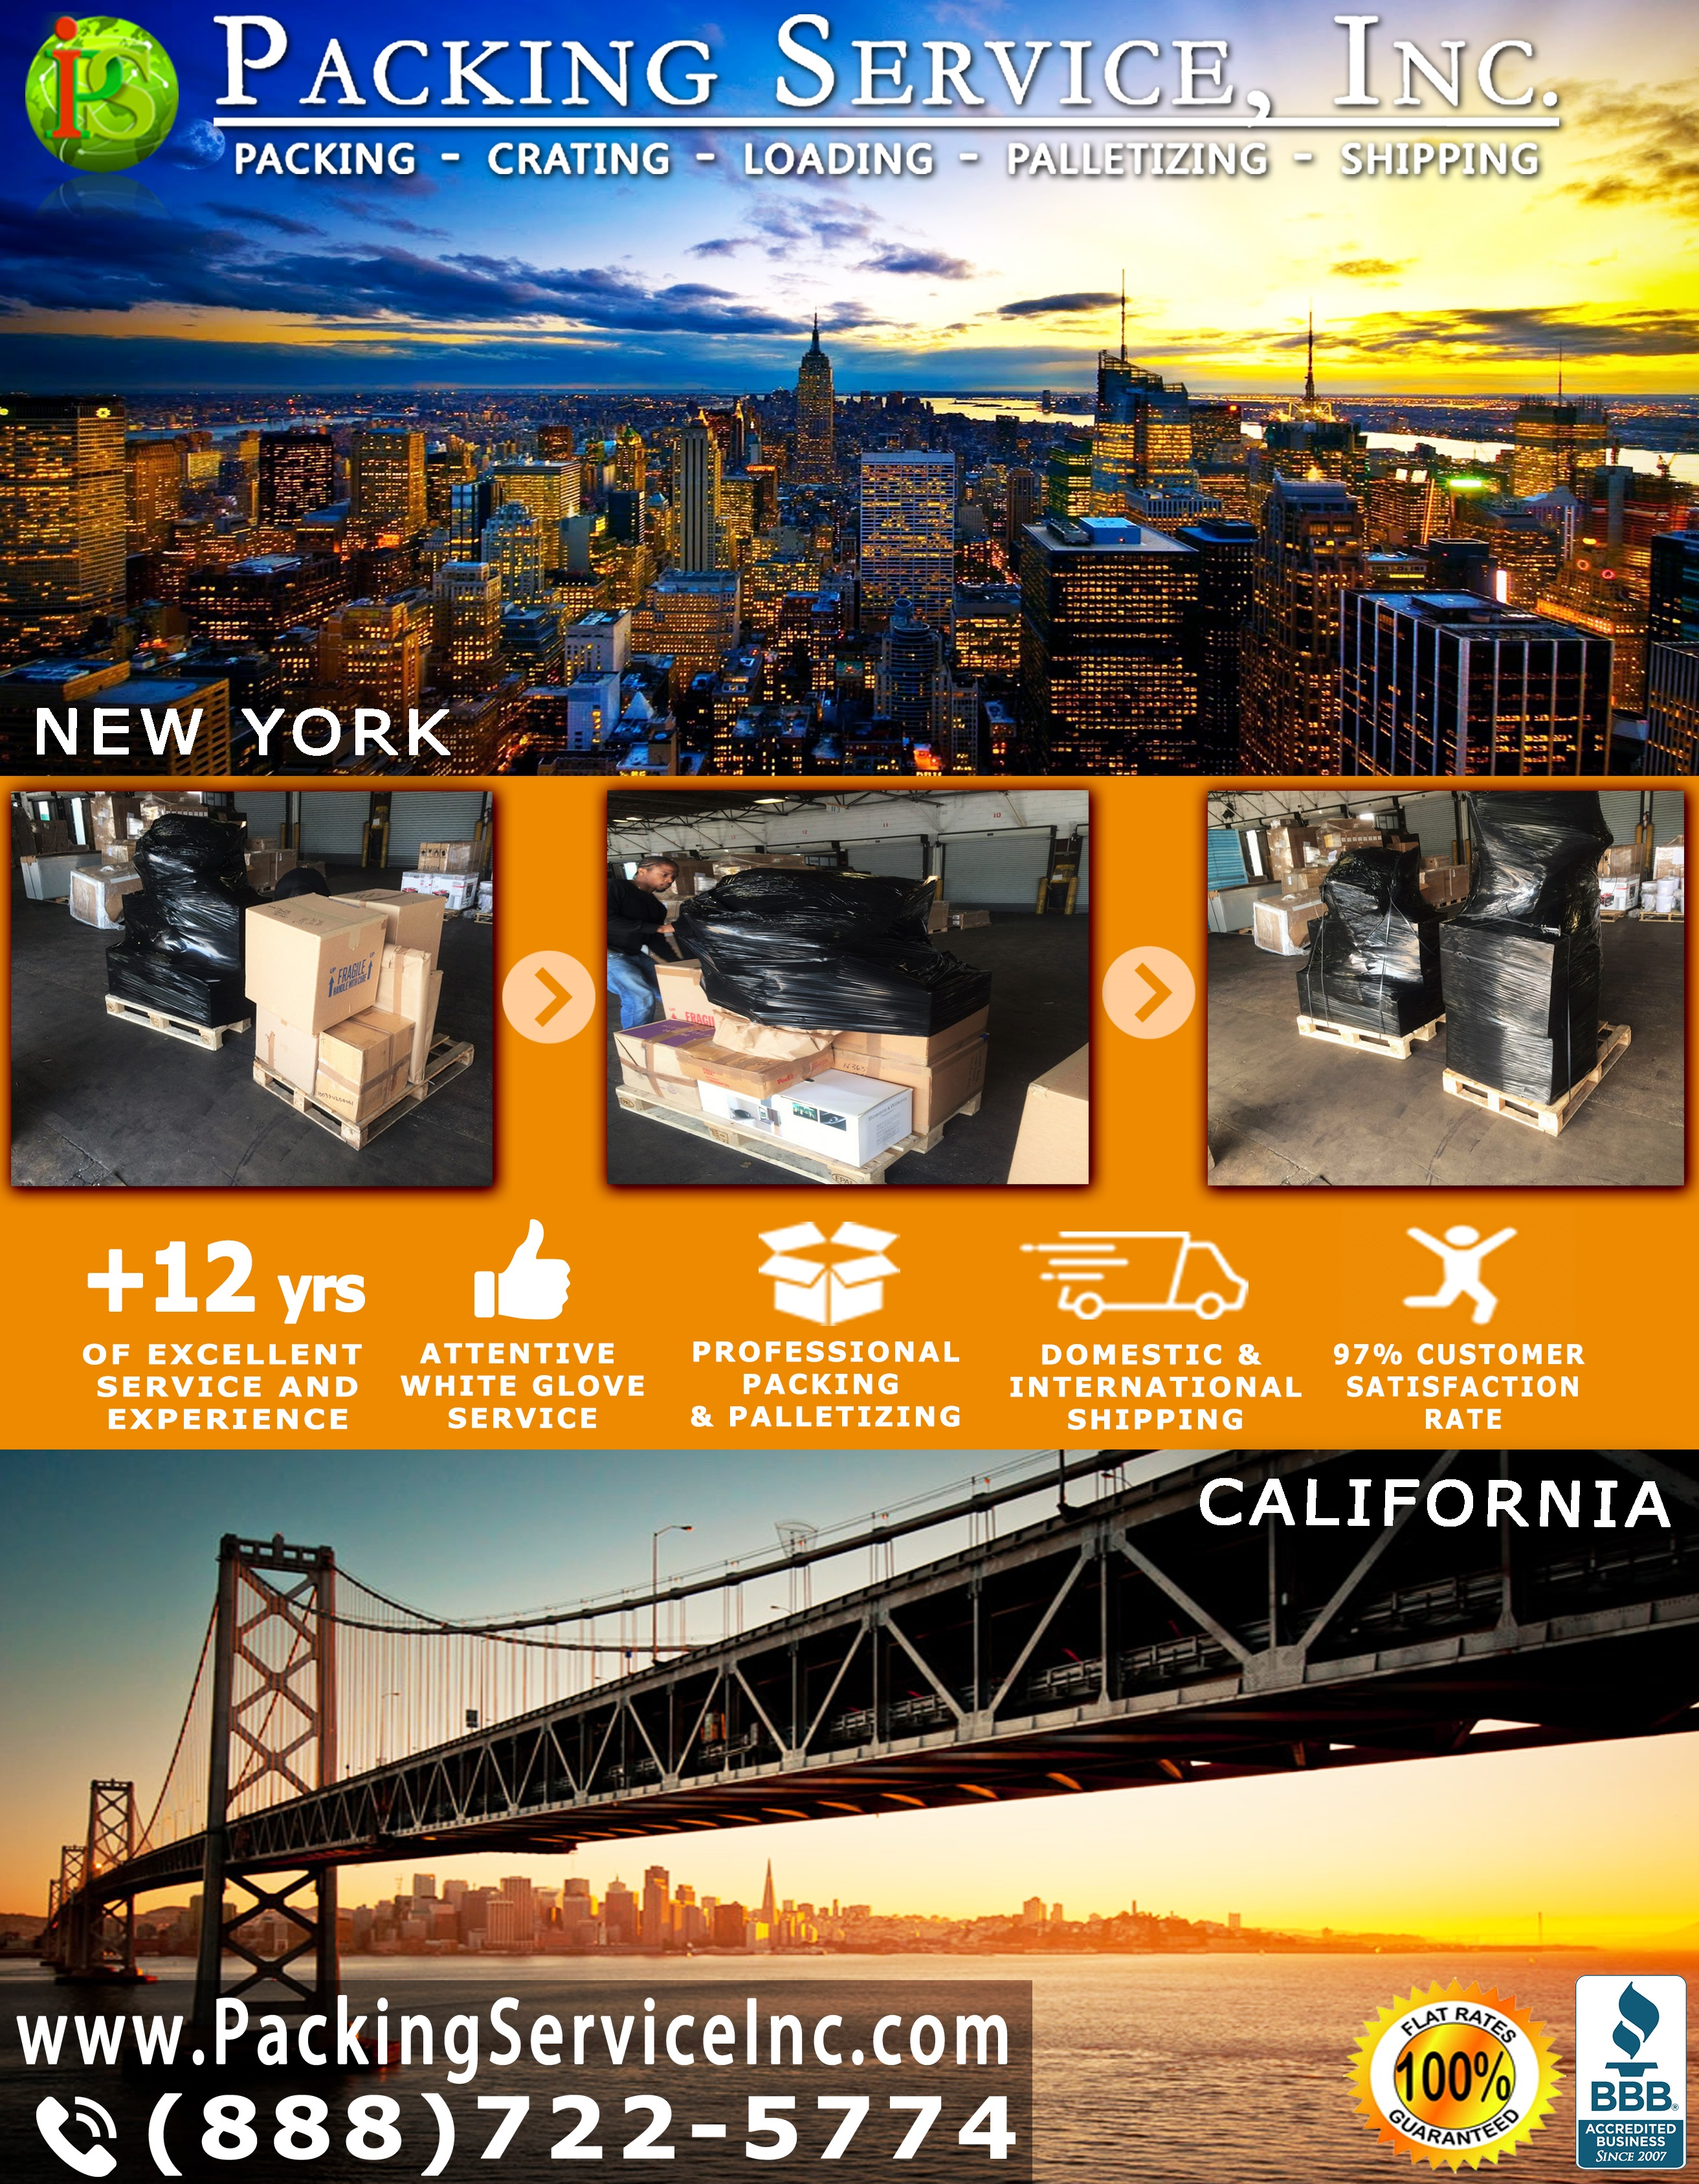 packing-boxes-palletizing-and-shipping-from-new-york-to-california-with-packing-service-inc-549